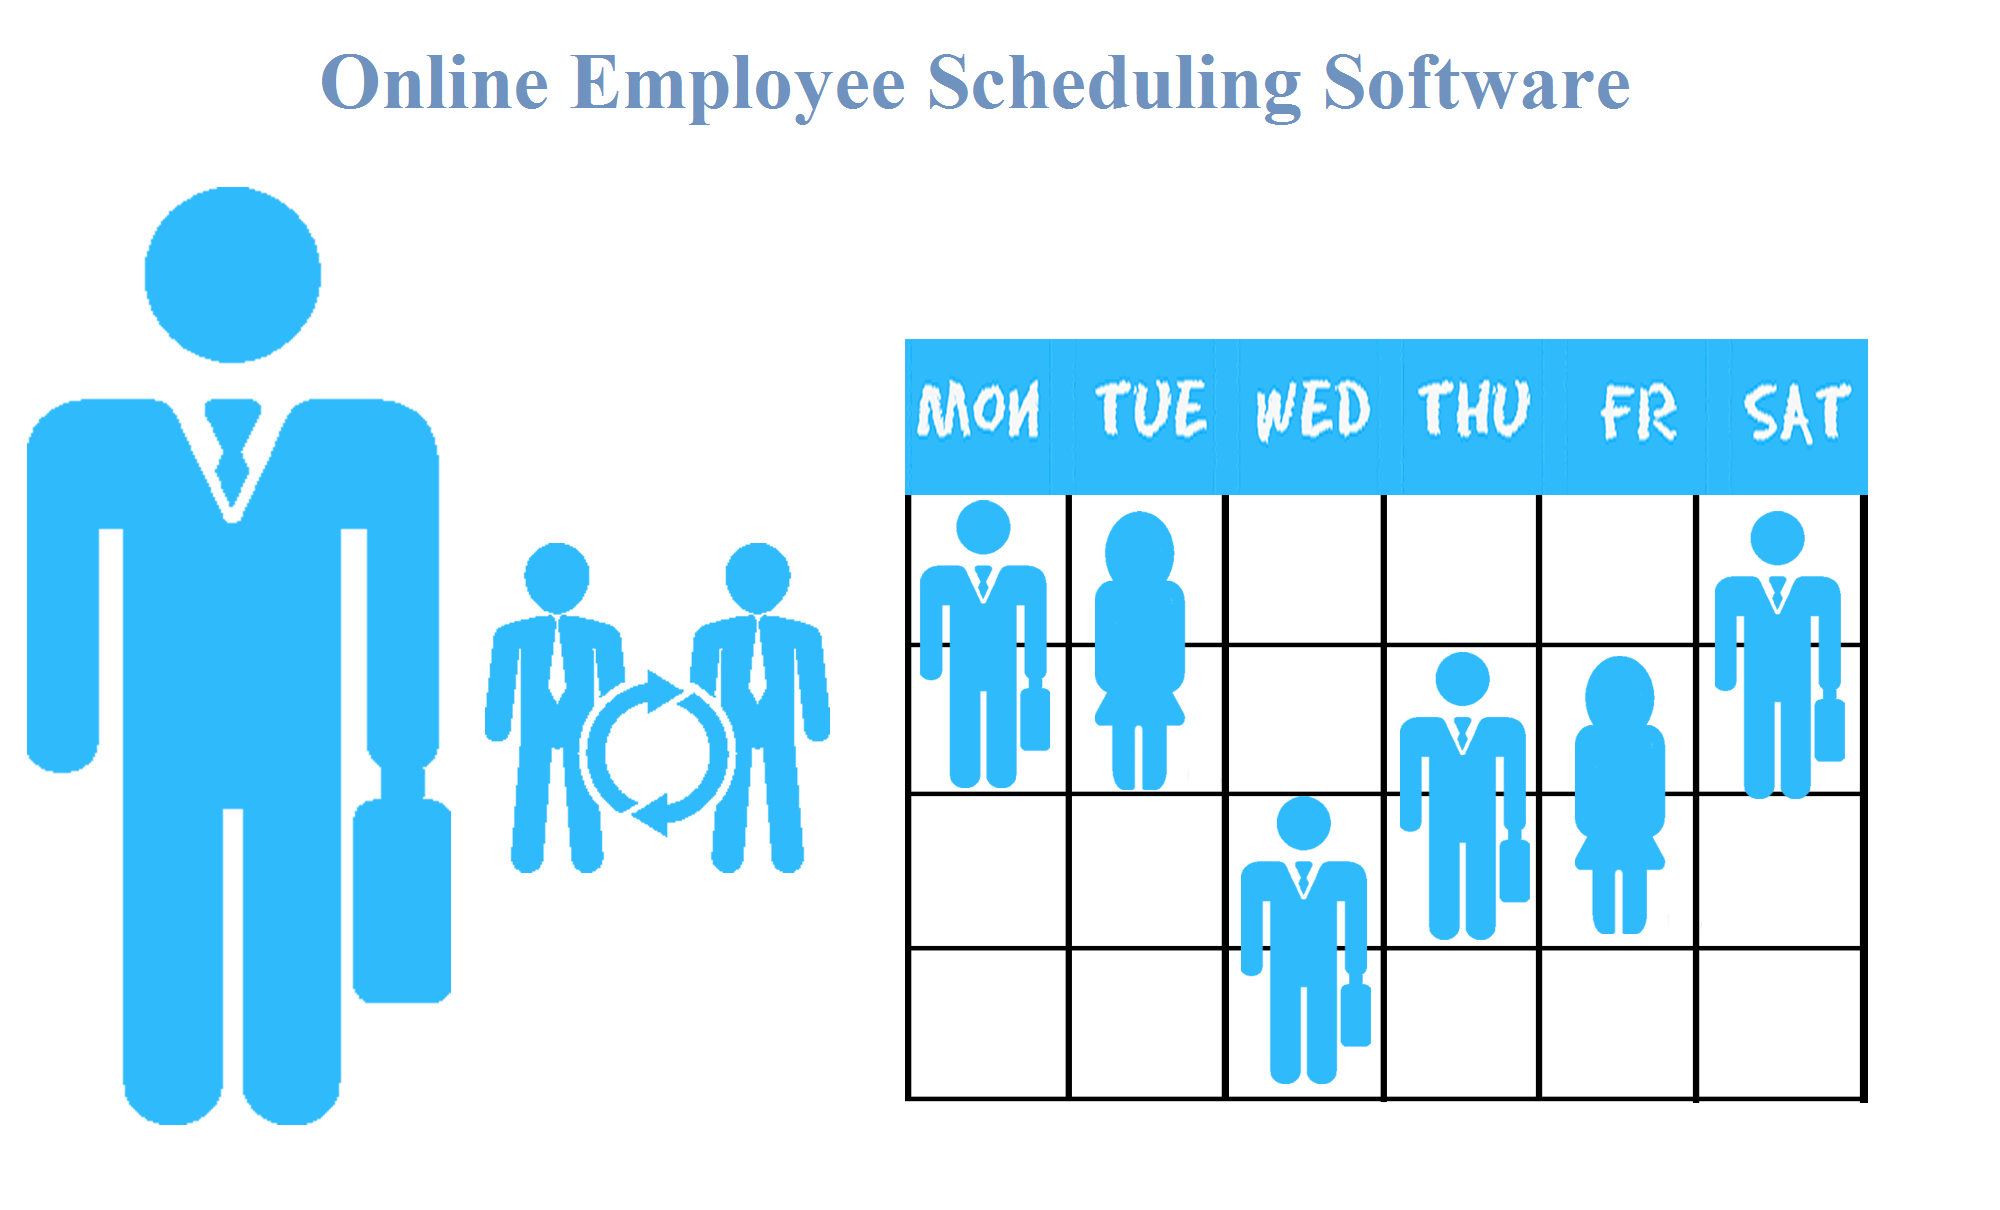 Global Online Employee Scheduling Software Market 2017. Business Intelligence Tableau. Where Can I Recycle My Ink Cartridges. Clinical Psychology Masters Programs Nyc. Master Business Administration Jobs. How To Register Llc In Texas. Acne Treatment Without Benzoyl Peroxide. Harpers Payroll Services Just Jeeps Knoxville. Harris County Hospital District Human Resources